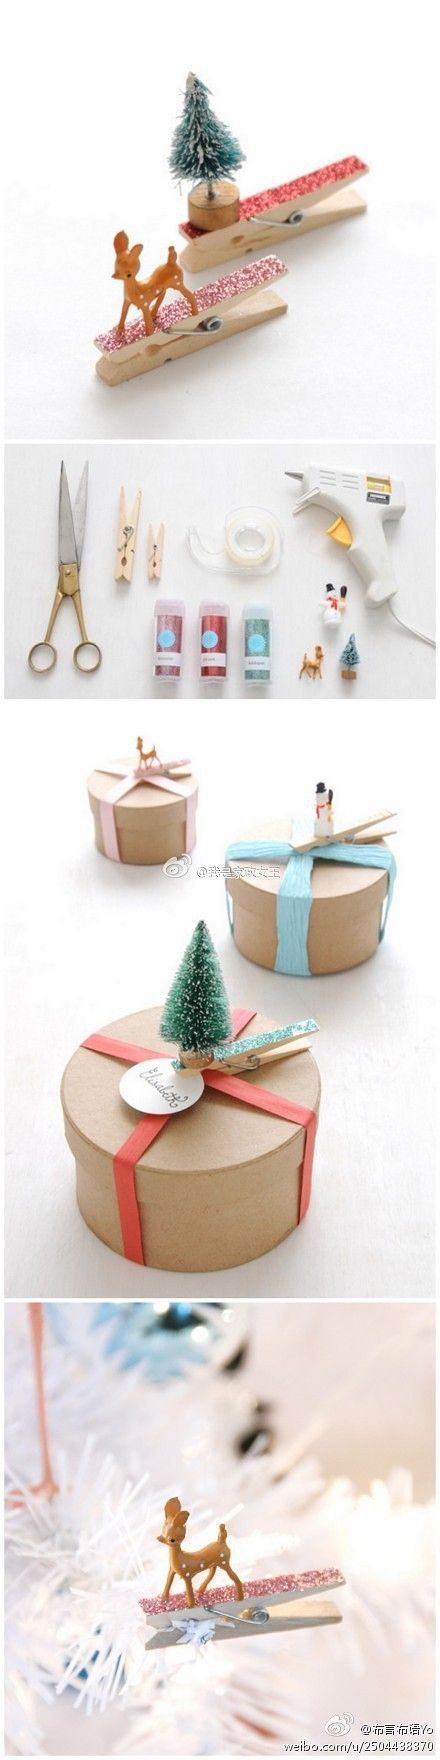 Christmas DIY: decorating clothespins to use for name tags on those Christmas…